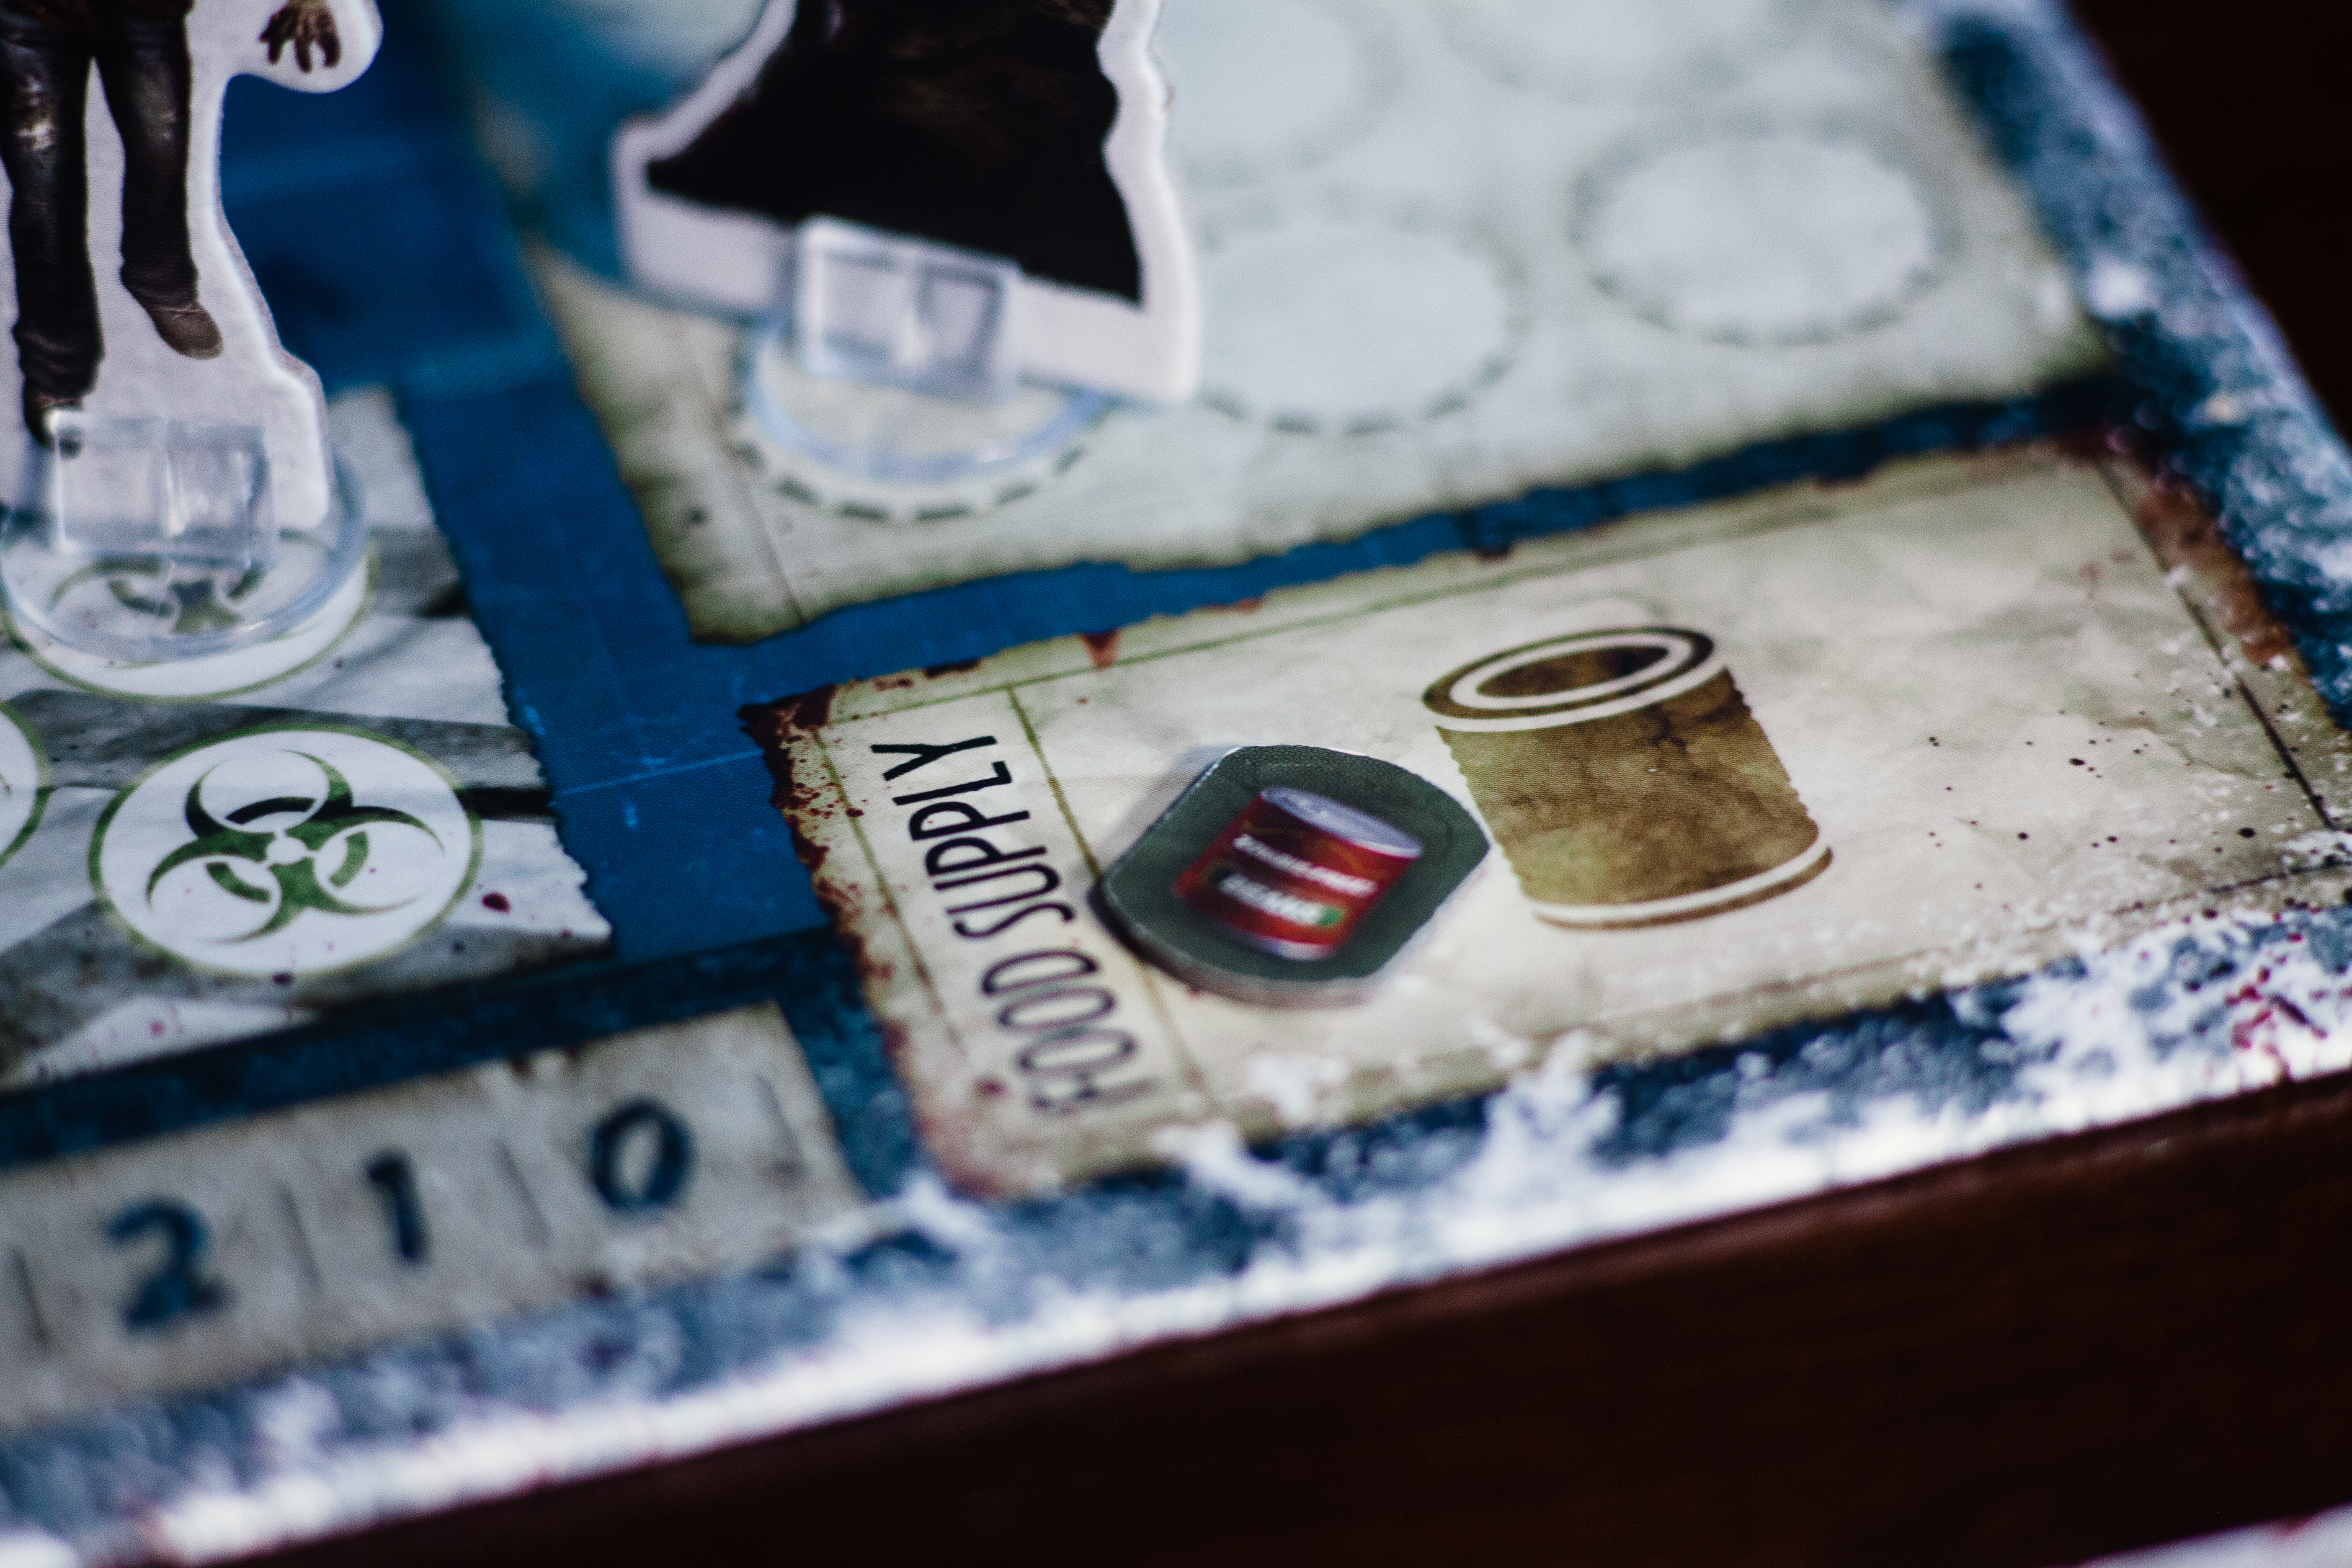 10 board games to give you a good Halloween scare - Deseret News